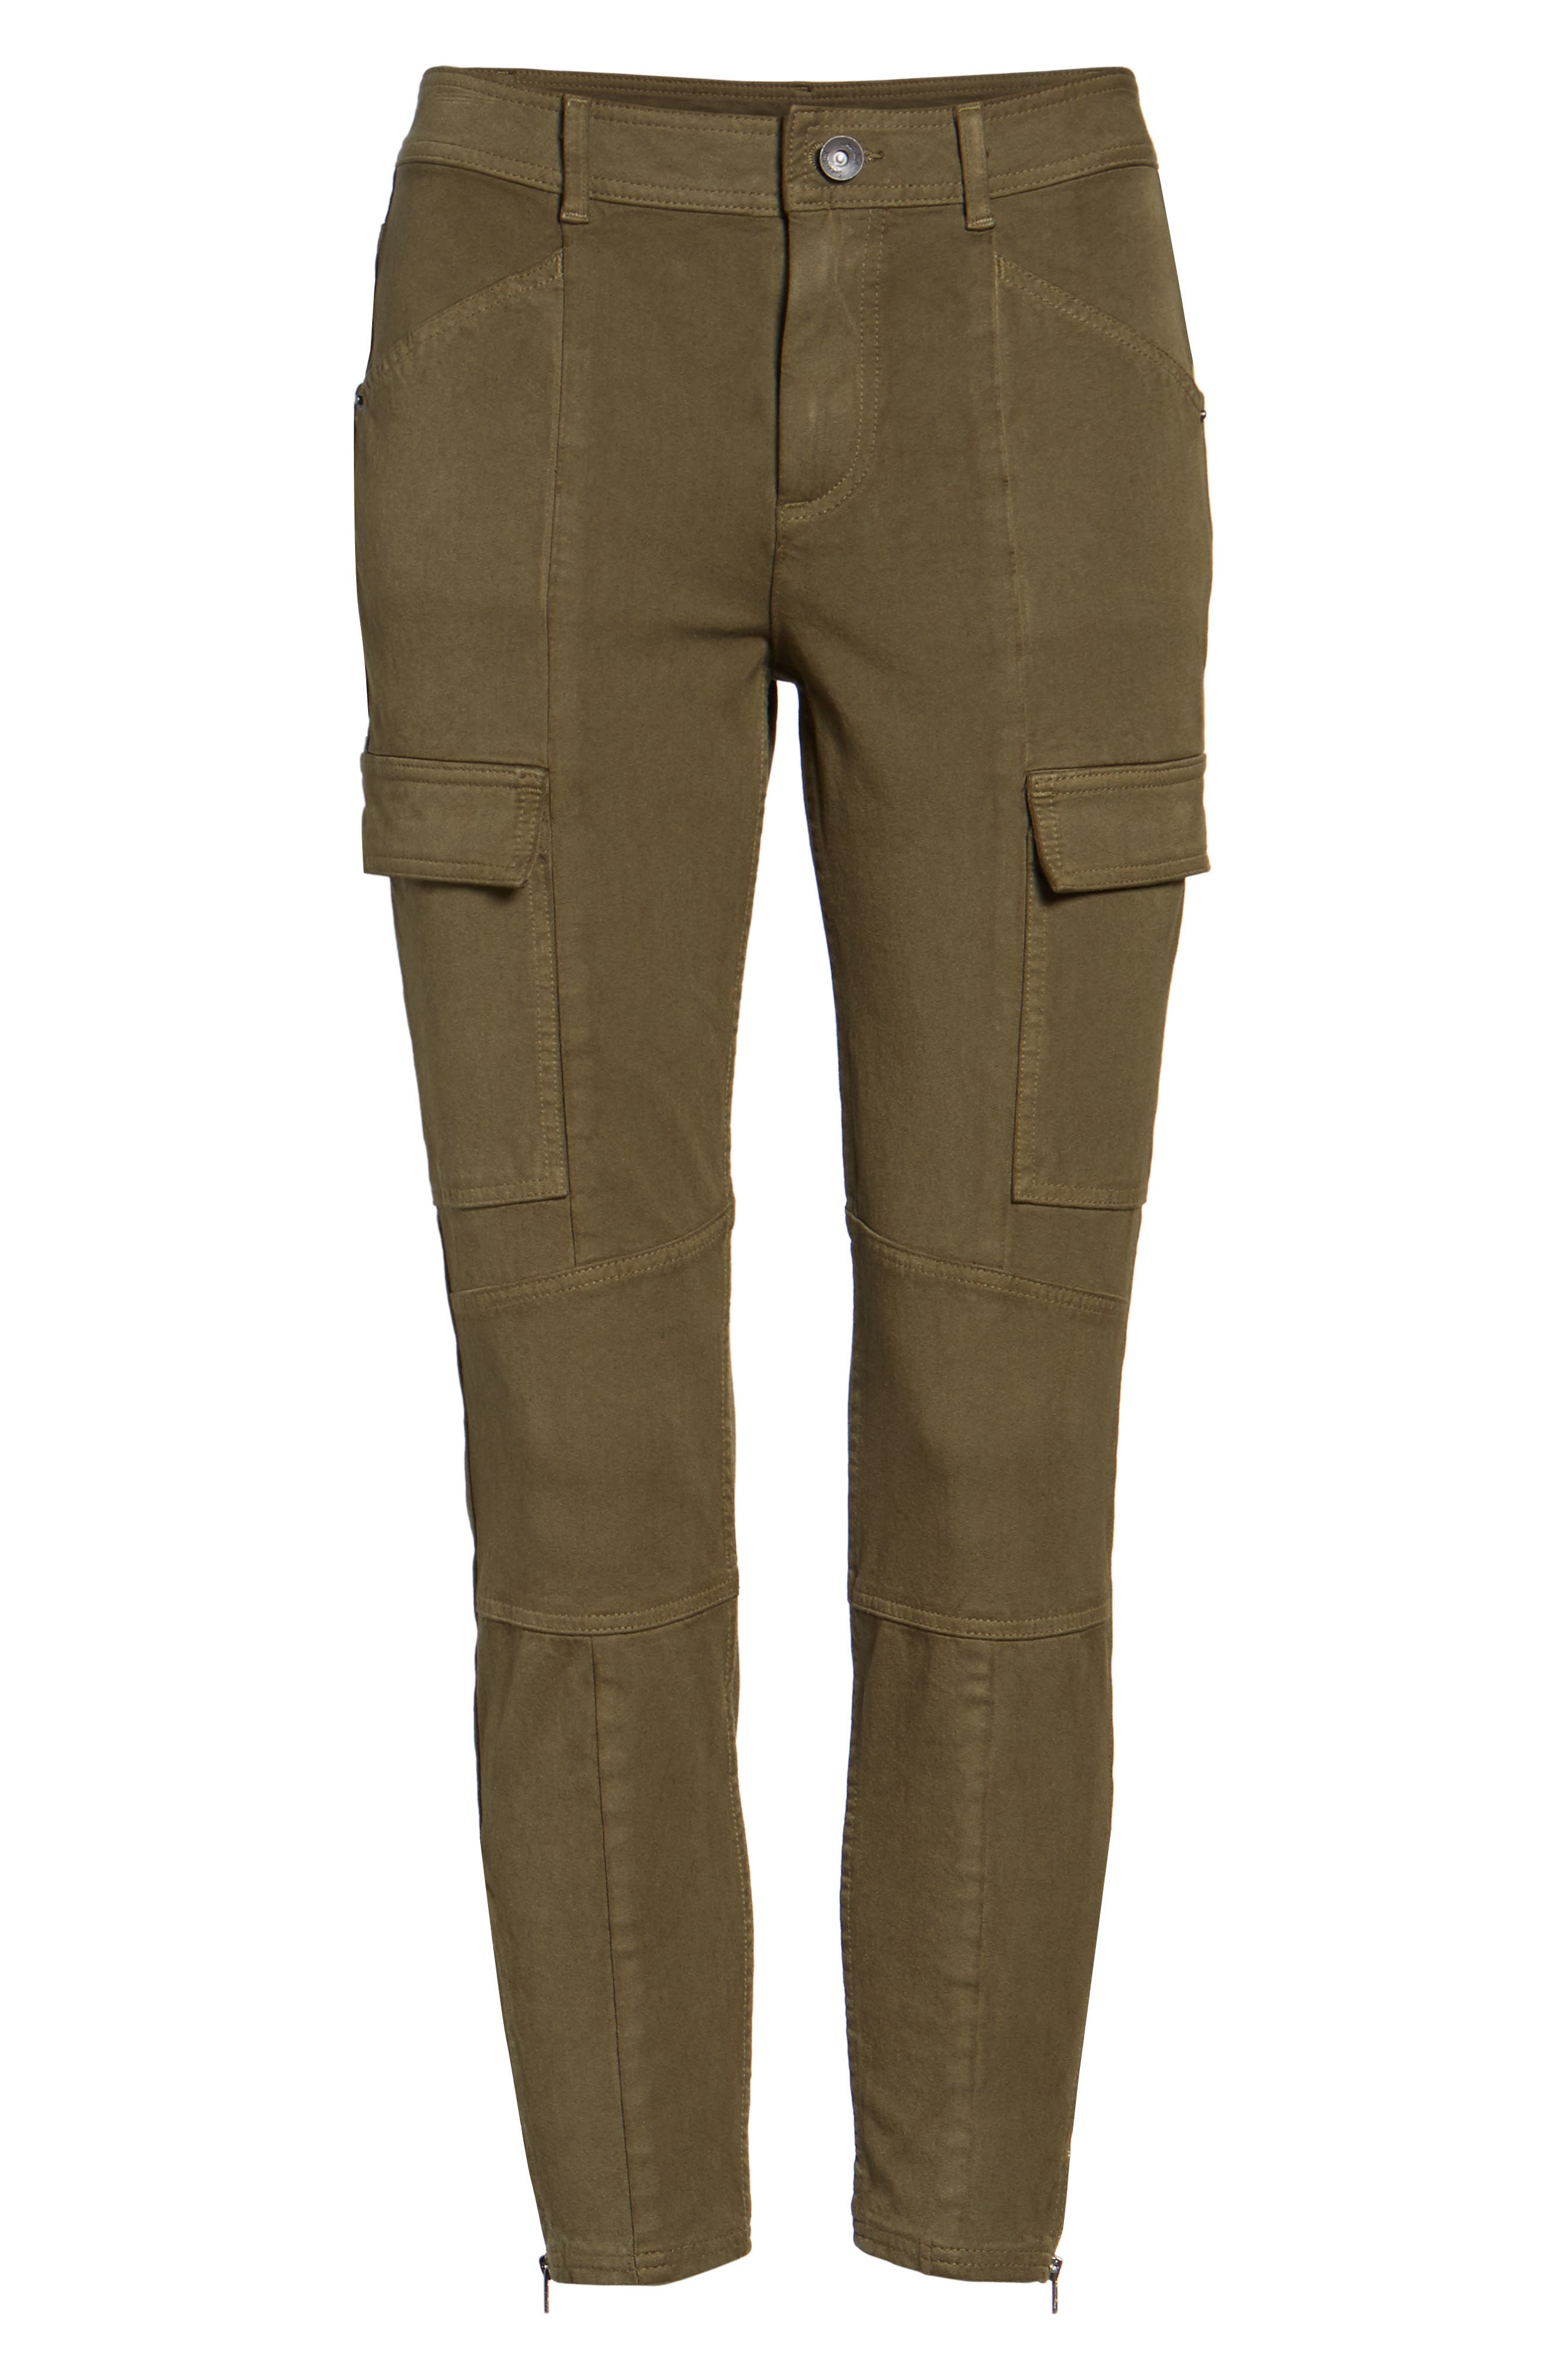 Stretch Twill Cargo Pants,                             Alternate thumbnail 6, color,                             001